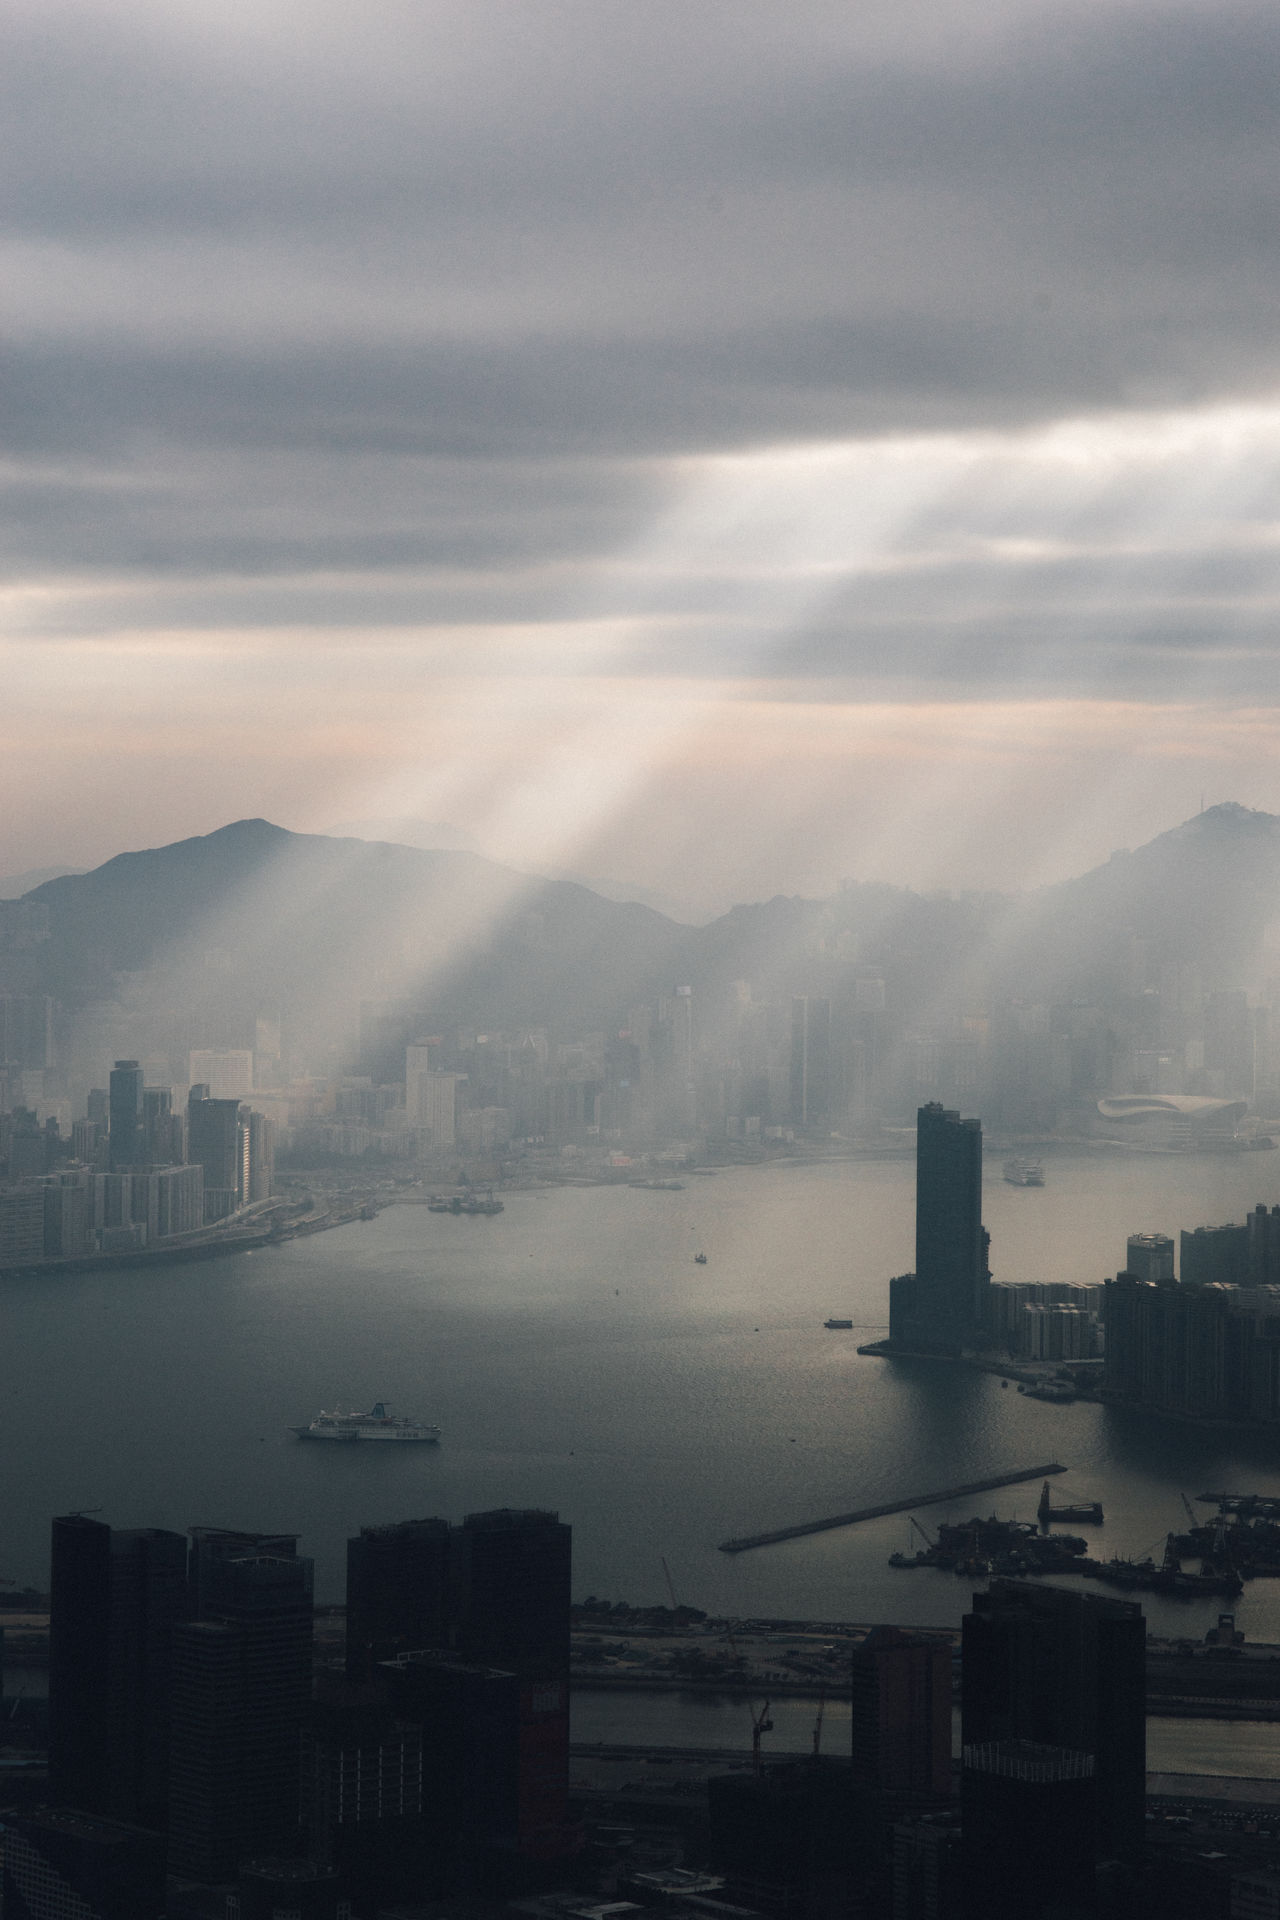 Aerial View Architecture Building Exterior Built Structure City Cityscape Cityscape Cityscapes Cloud - Sky Downtown District Fog Hong Kong HongKong Landscape_Collection Light And Shadow Light Up Your Life Mountain Nature No People Outdoors Scenics Sky Skyscraper Travel Destinations Urban Skyline